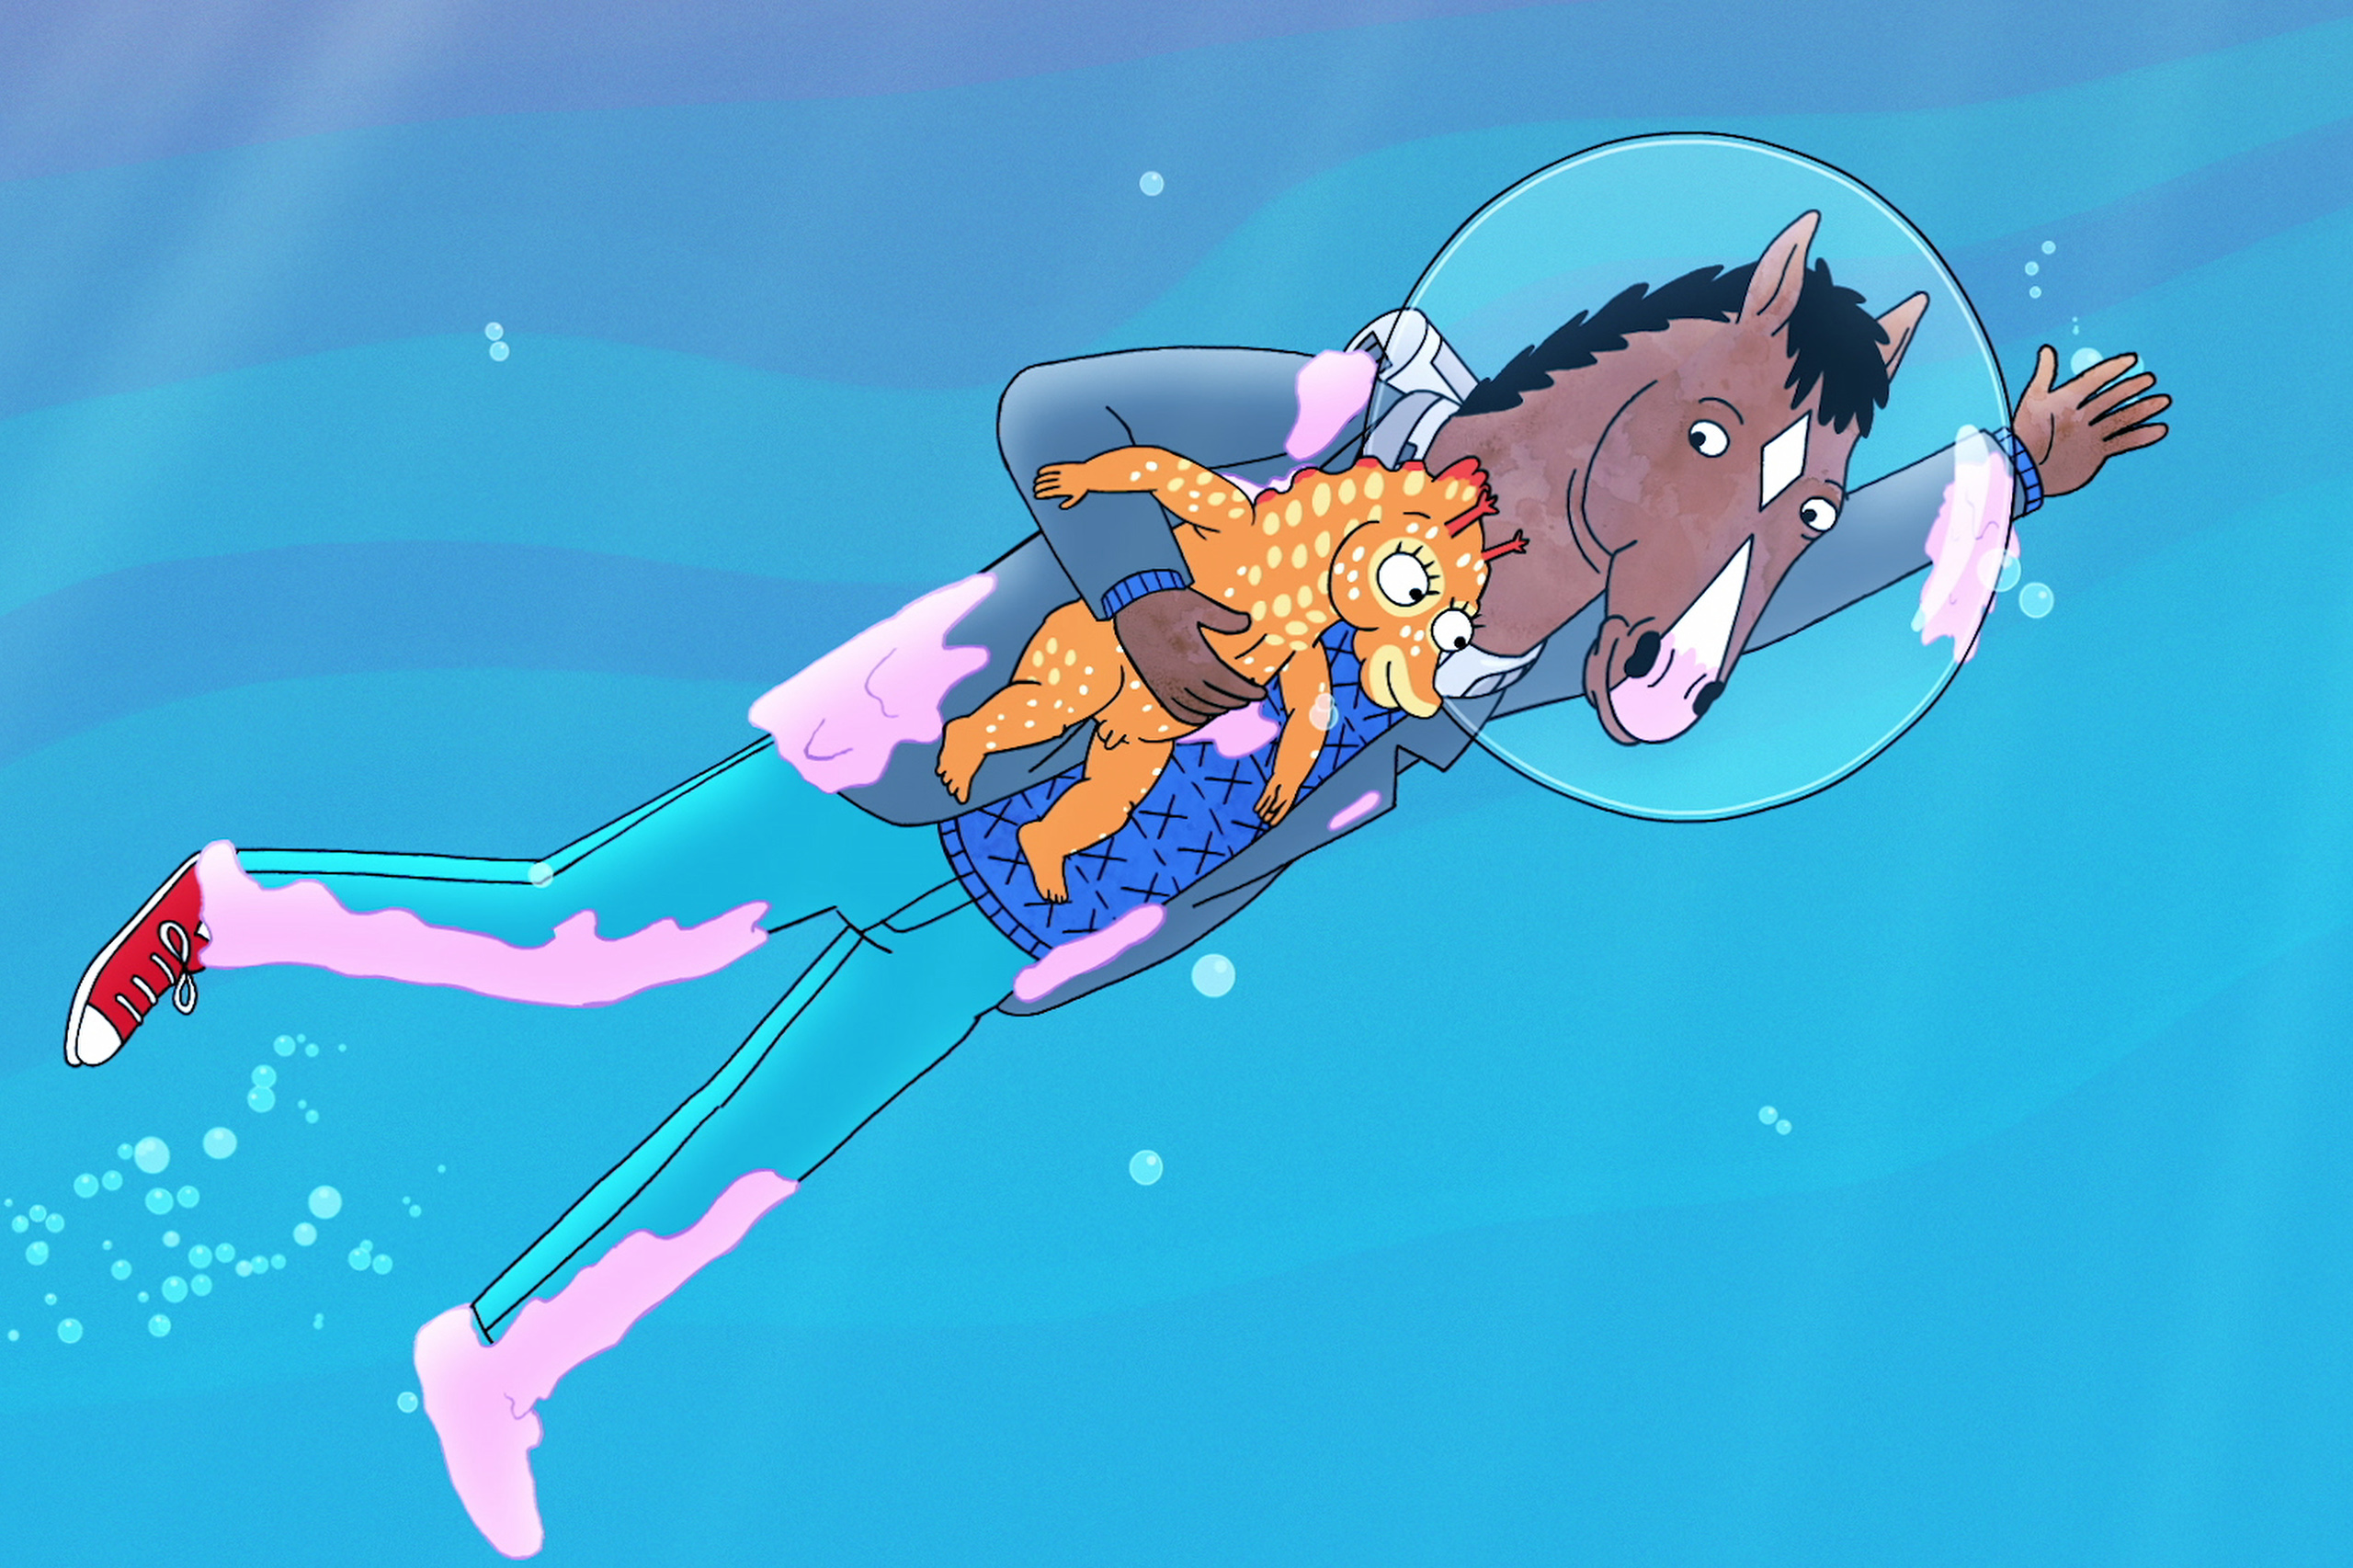 BoJack Horseman Season 3 premiering on Netflix on July 22, 2016. The series stars Will Arnett, Aaron Paul and Amy Sedaris. (Photo Netflix)